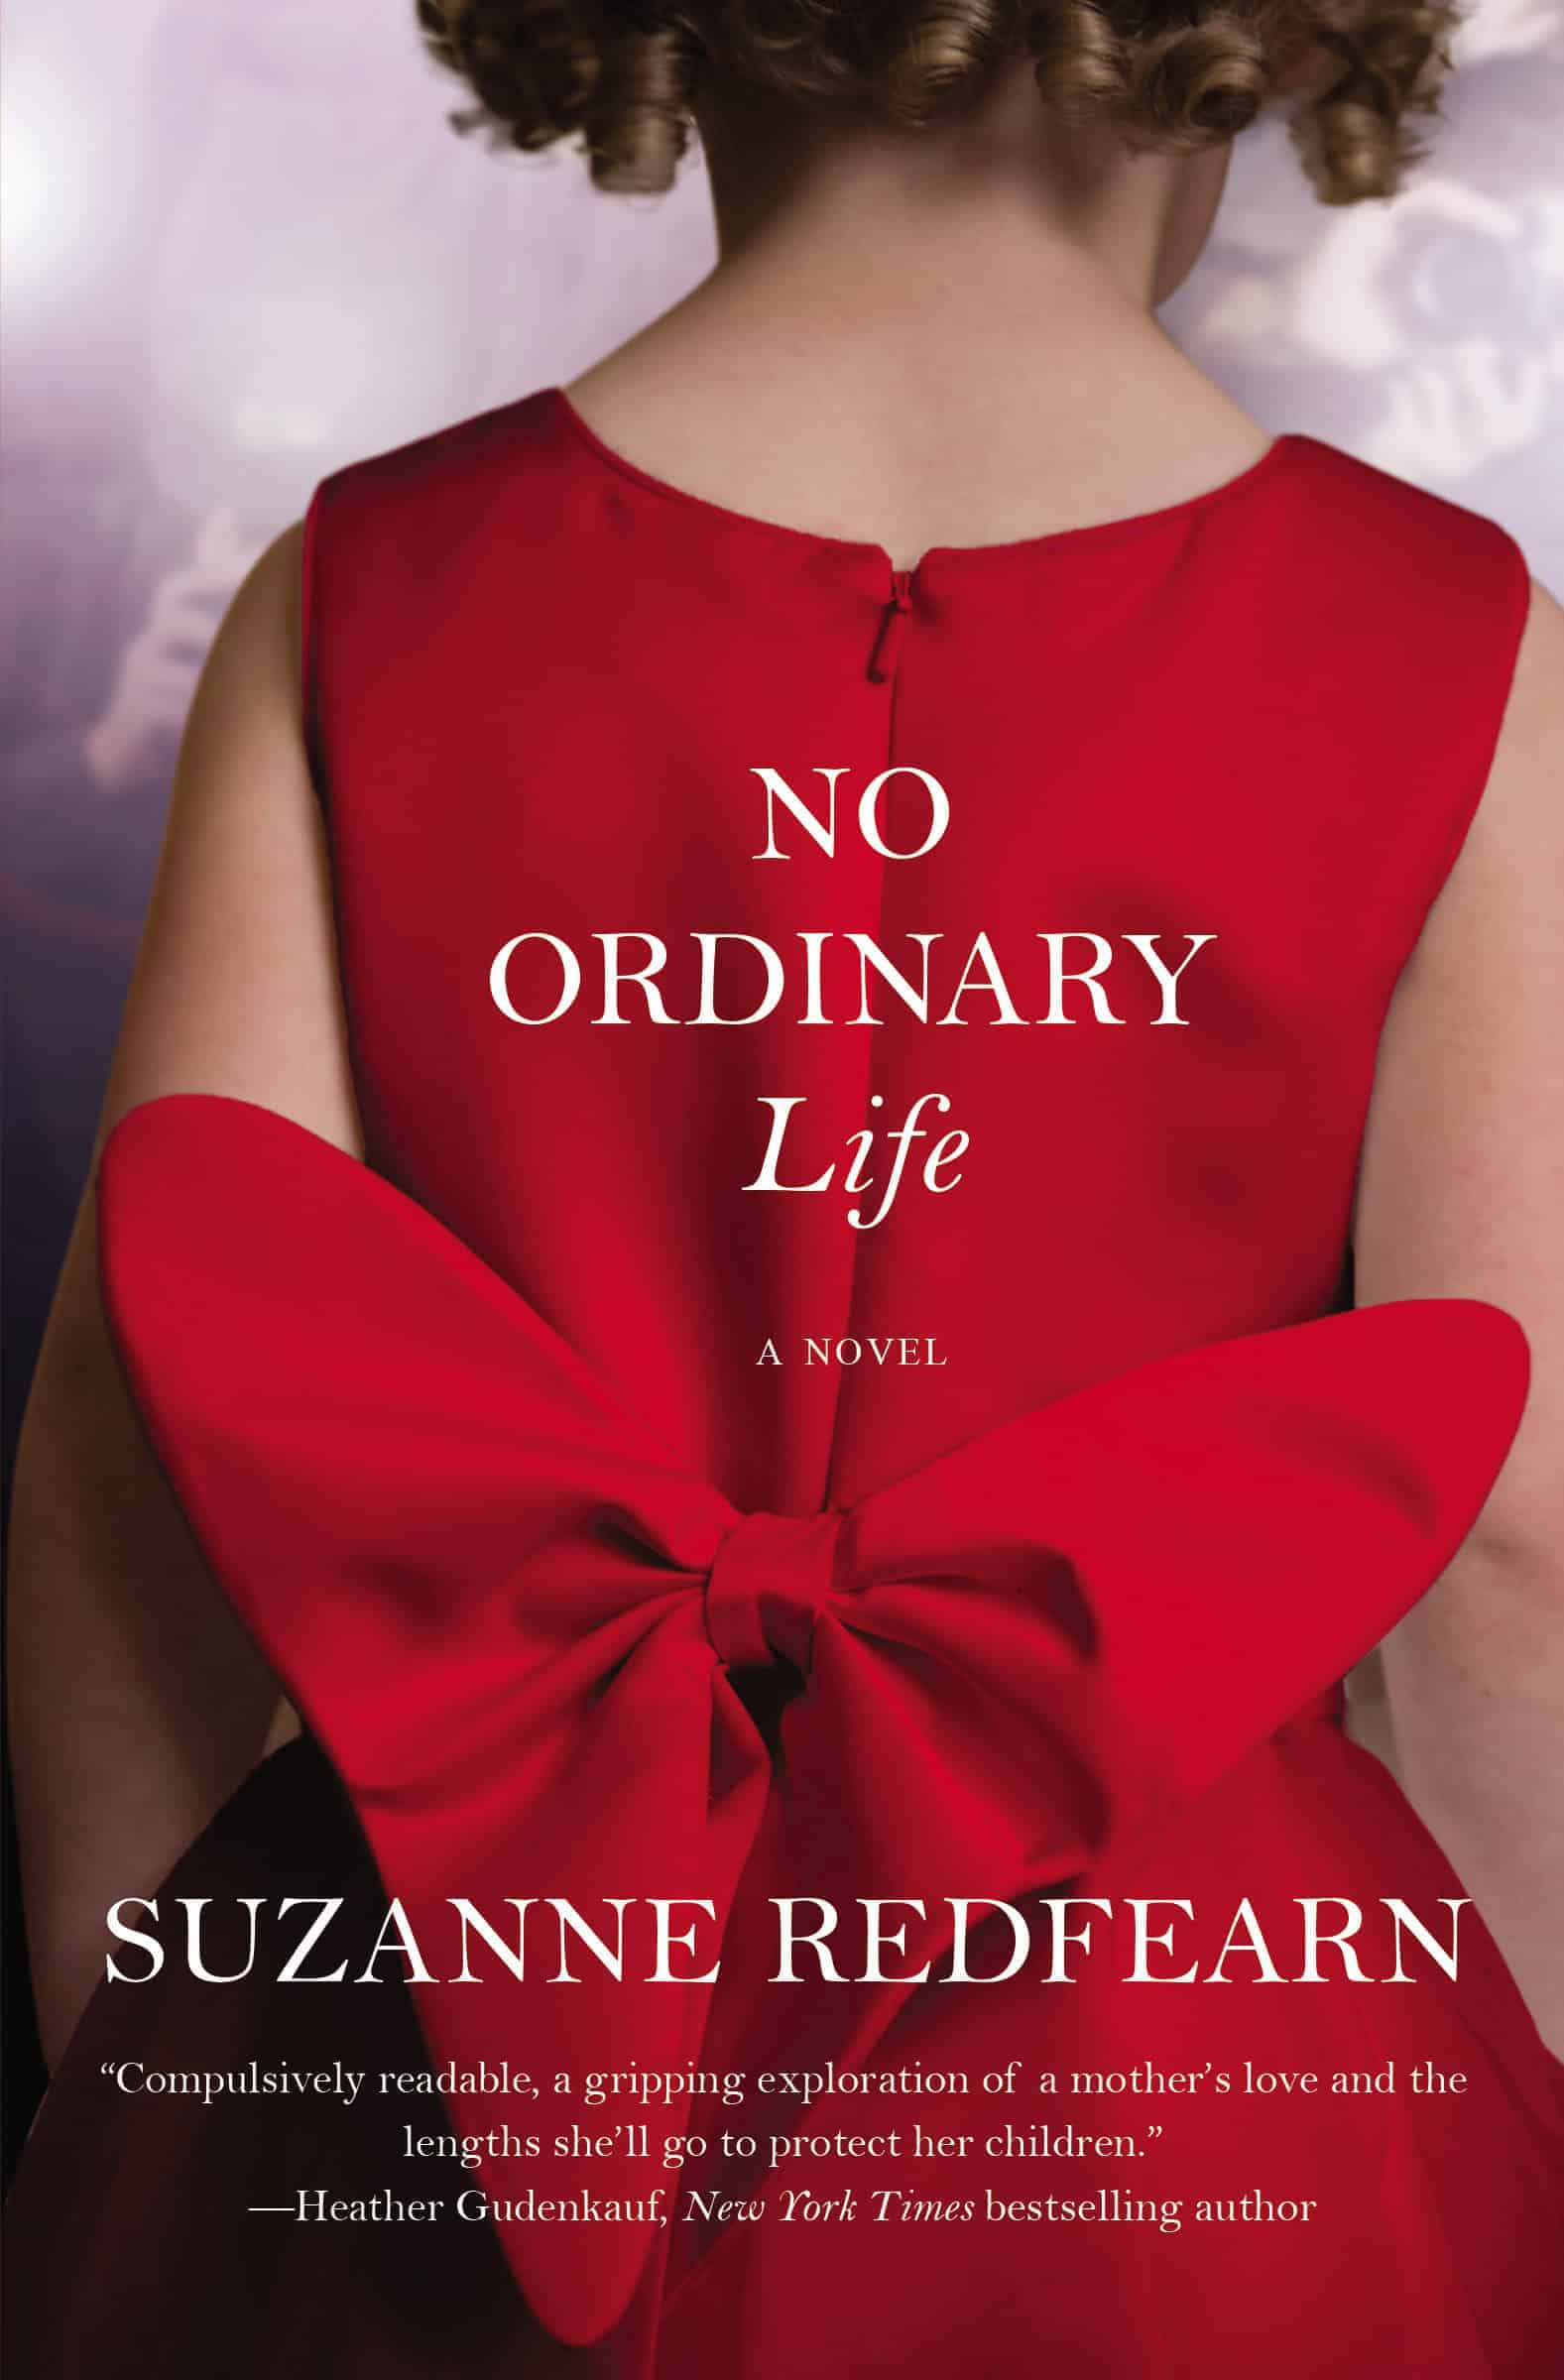 No Ordinary Life by Suzanne Redfearn is a family drama surrounding a single mother and what happens when her angelic 4 year old with the bouncing blonde curls becomes a TV star.